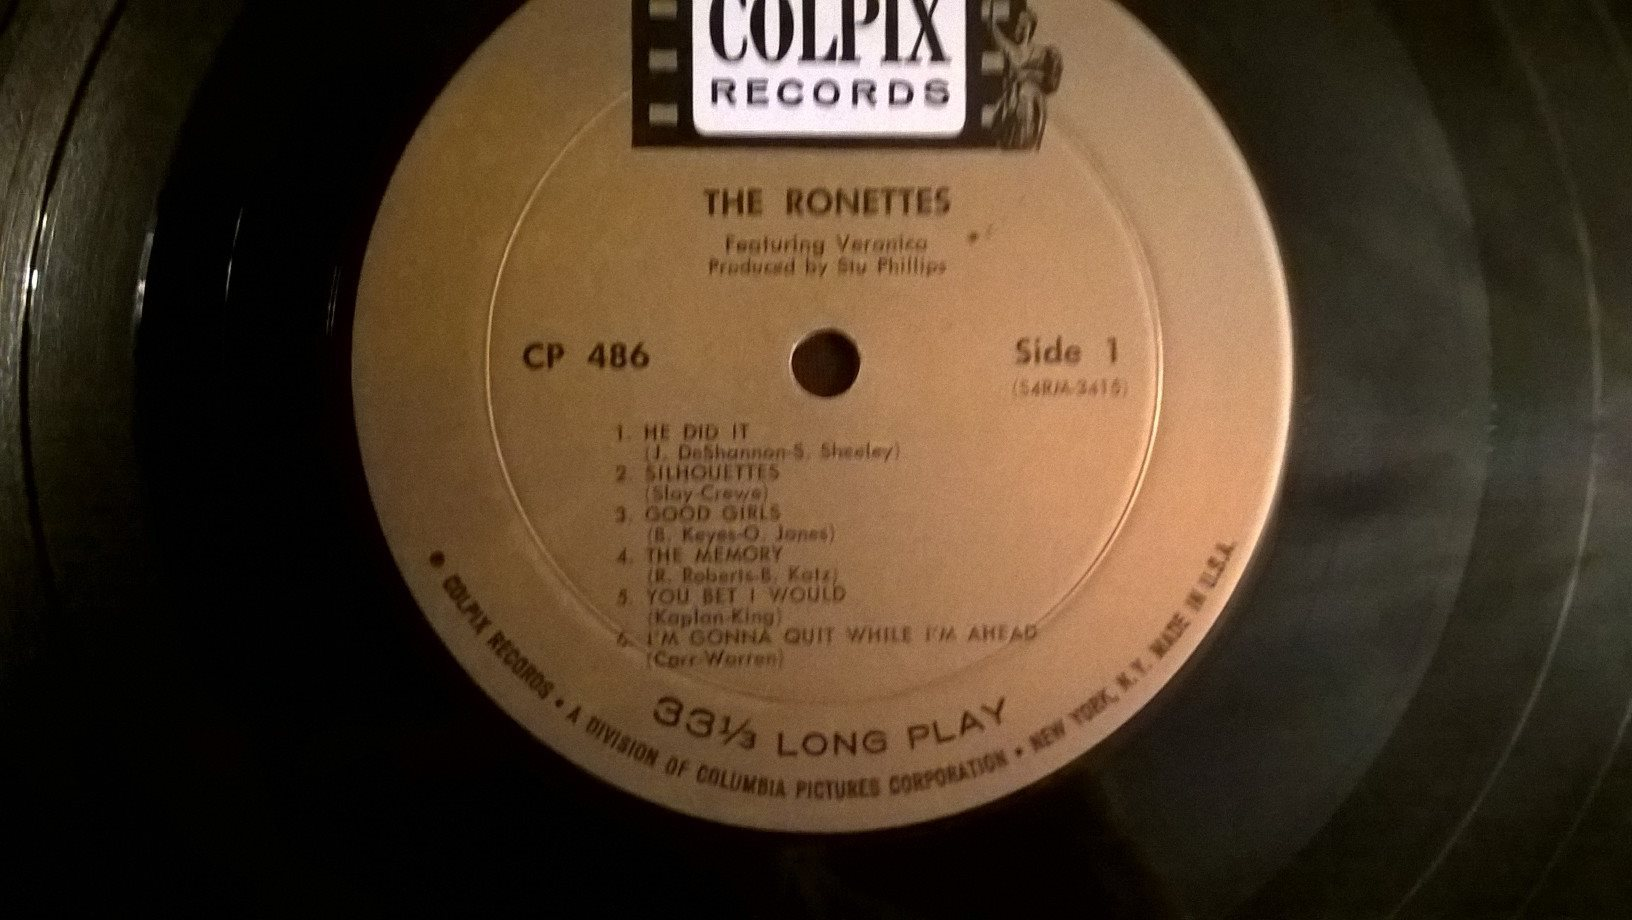 The Ronettes The Colpix Years 1961 1963